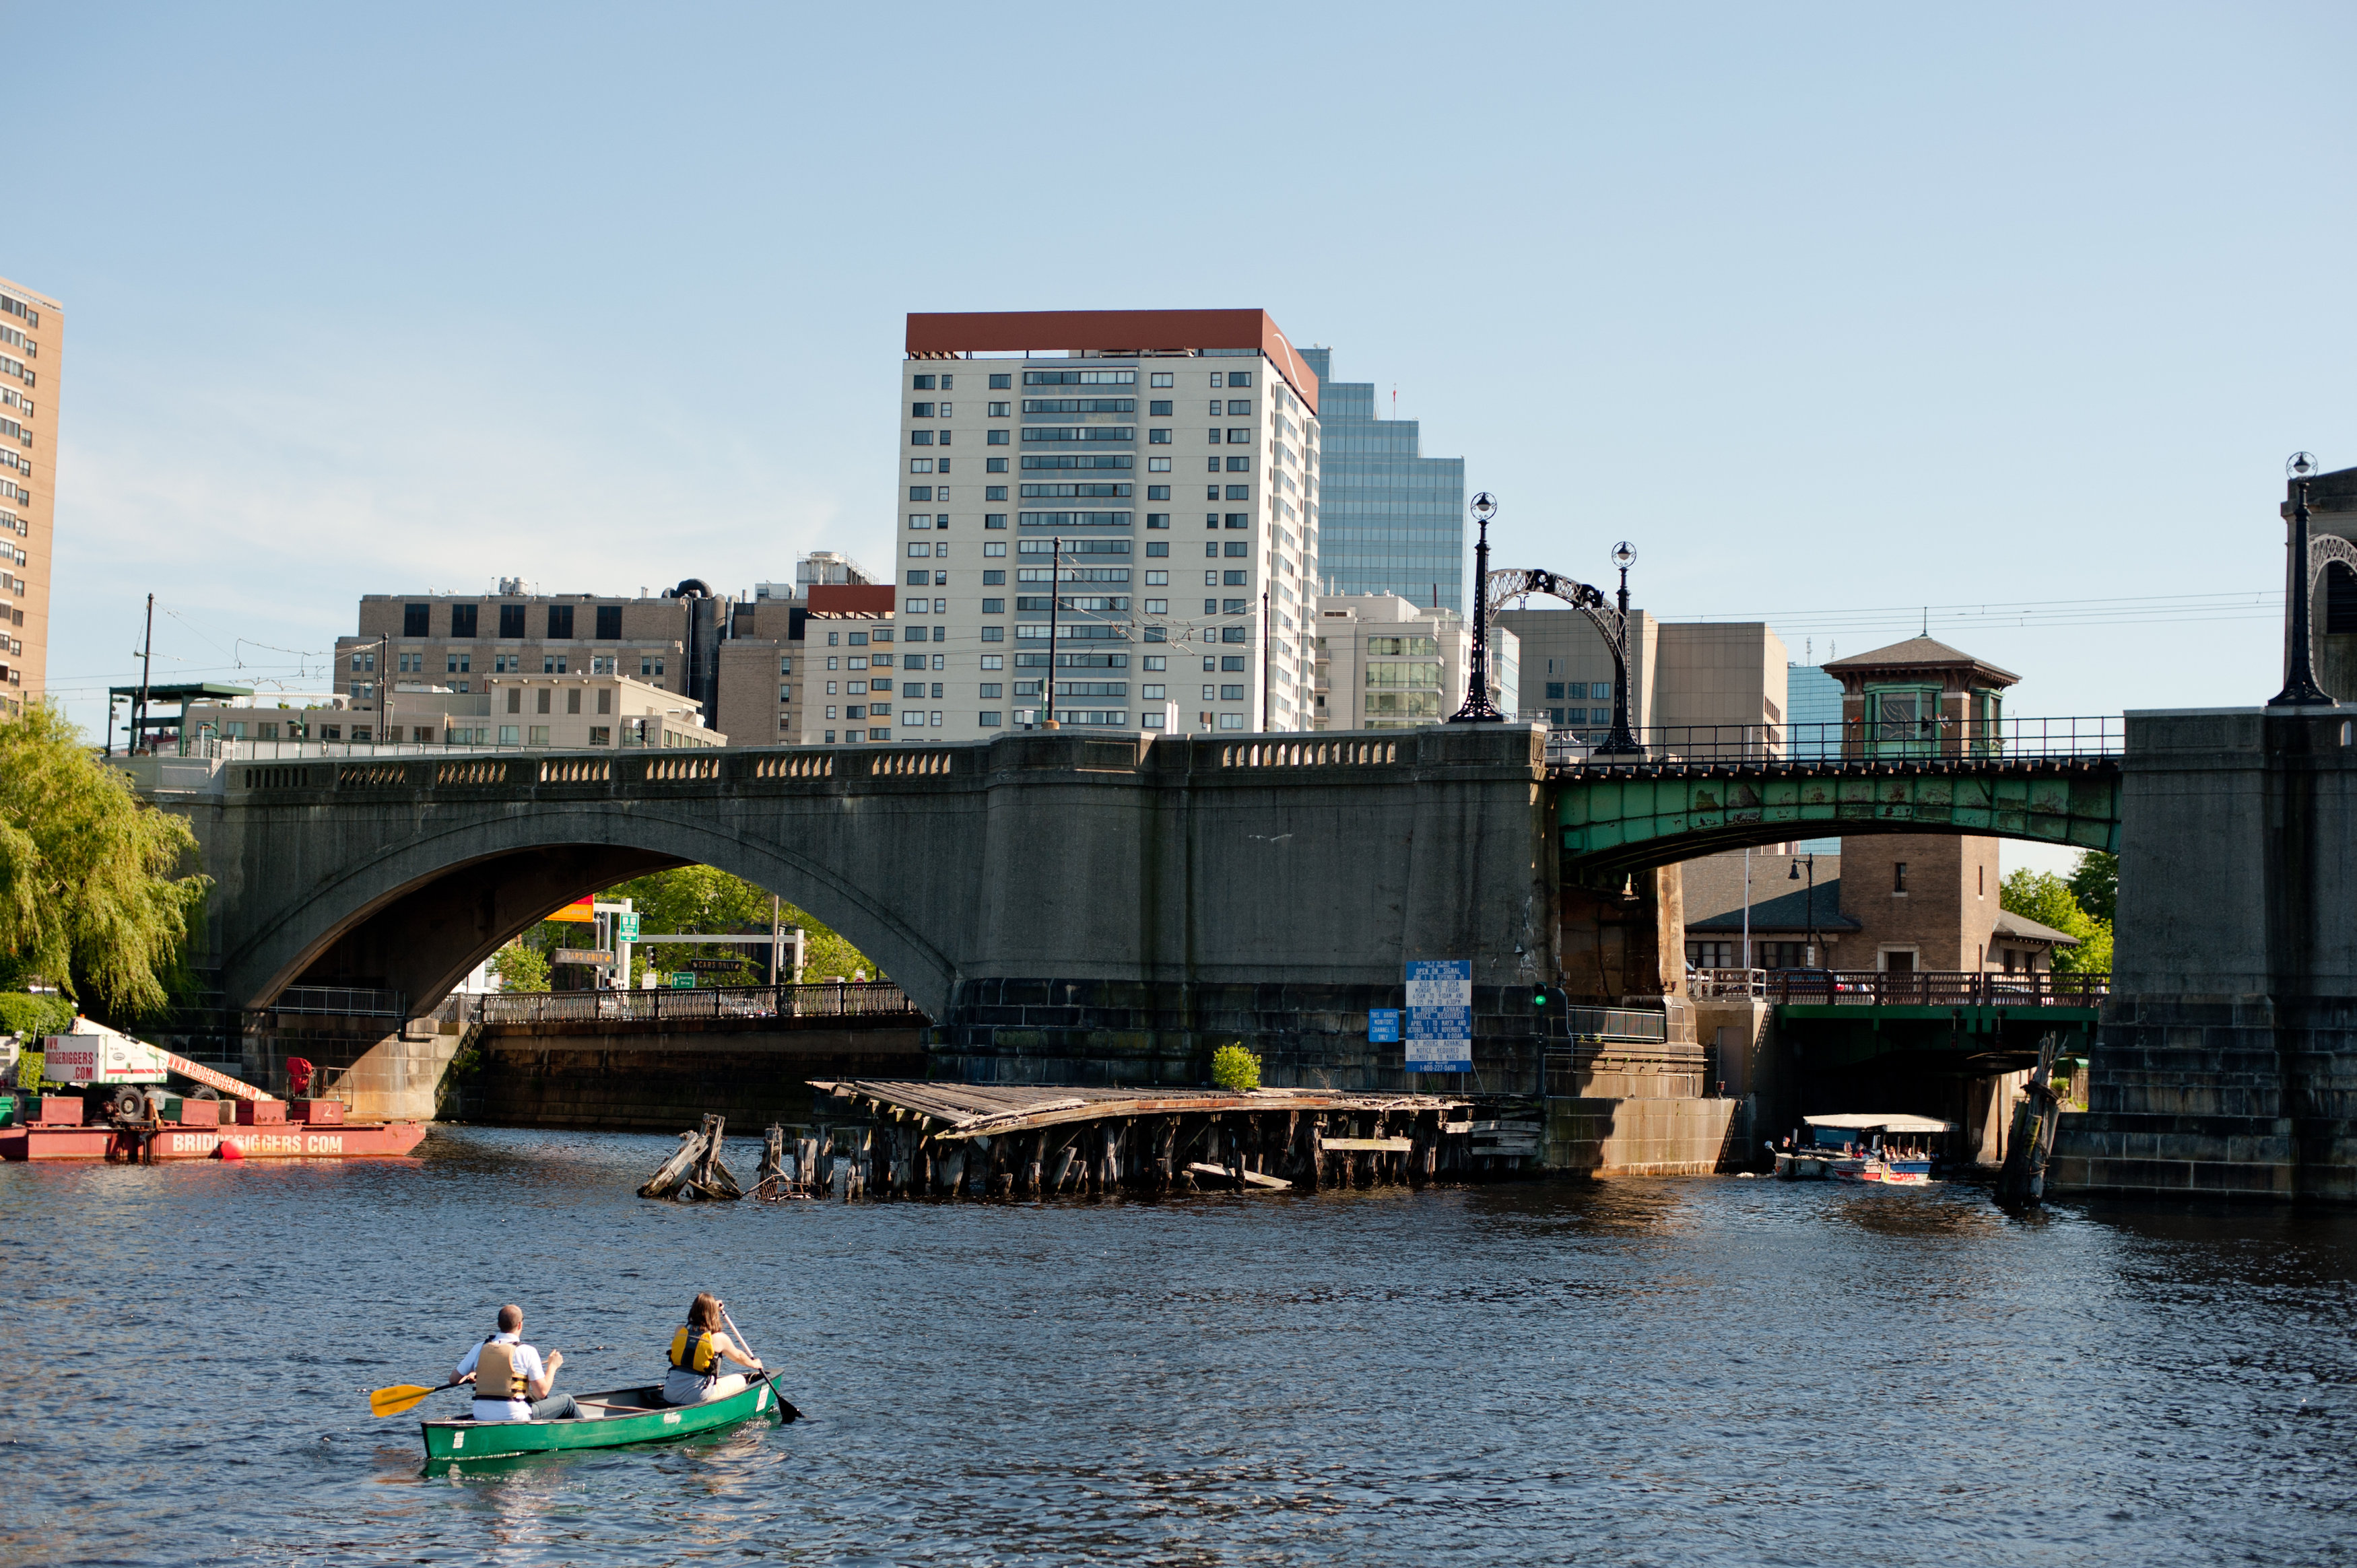 Image 14 of Marriage Proposal on the Charles River